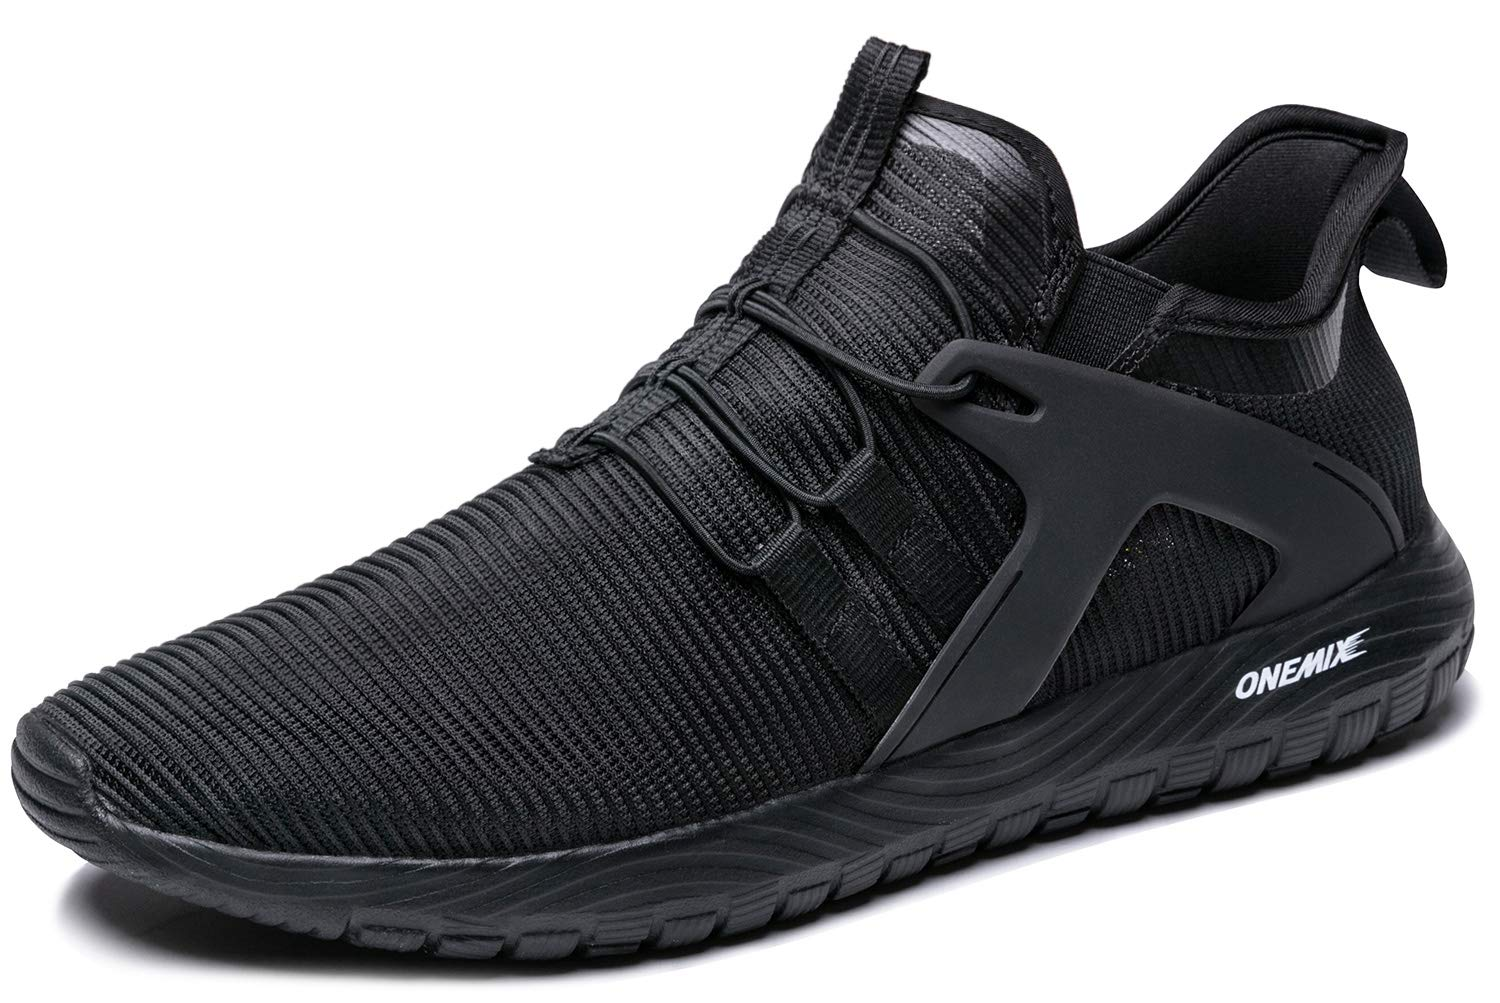 ONEMIX Mens Running Shoes Cushioning Sneakers Lightweight Casual Sports Slip-On Black 10.5